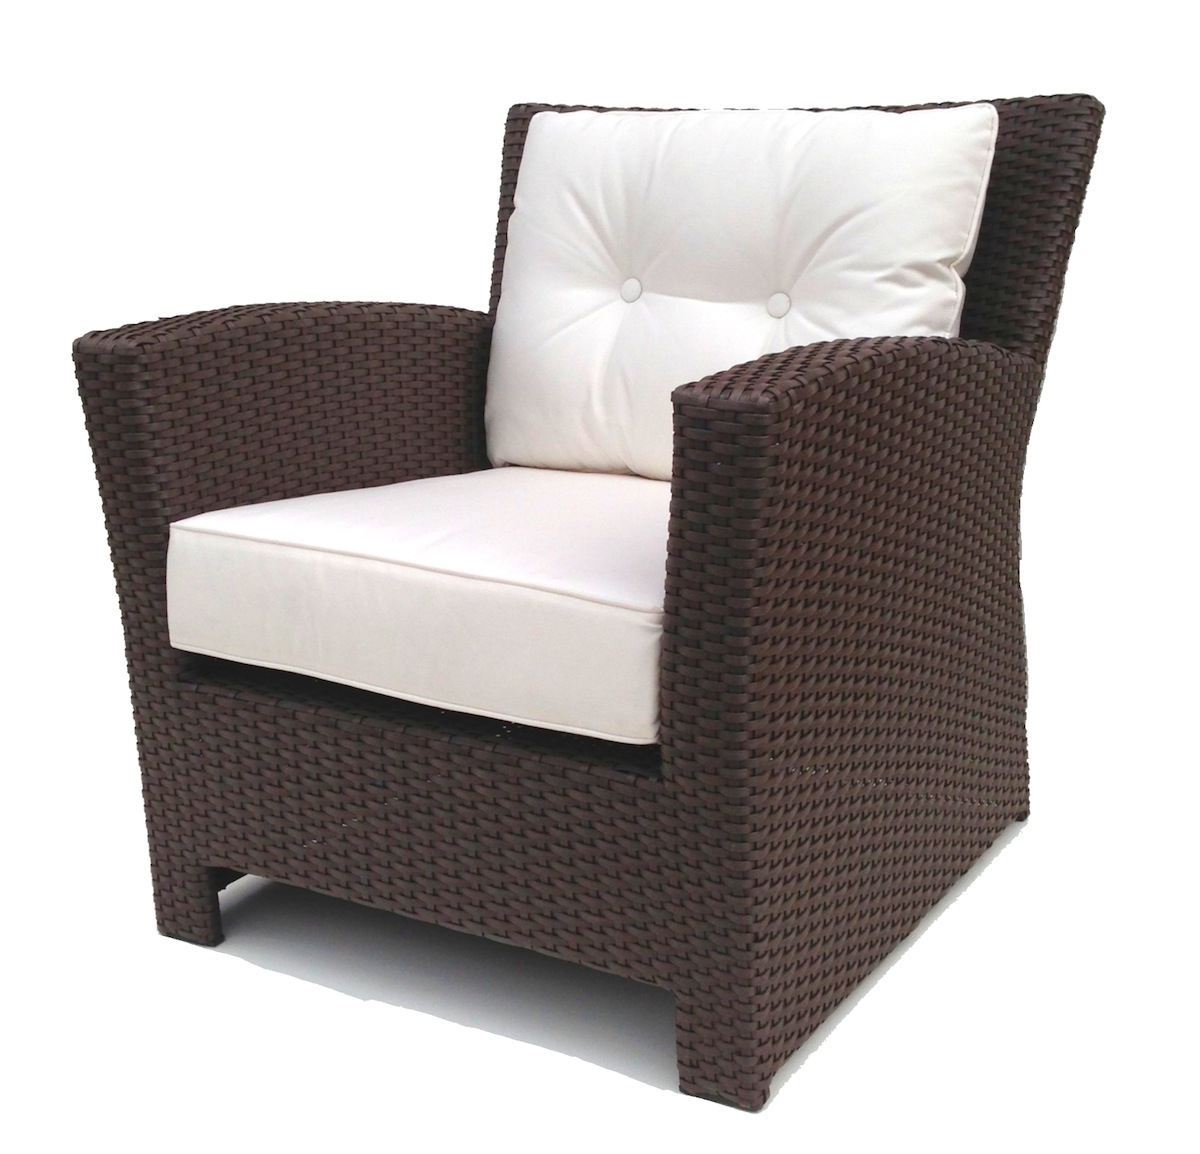 Wicker Patio Chair Outdoor Wicker Club Chair